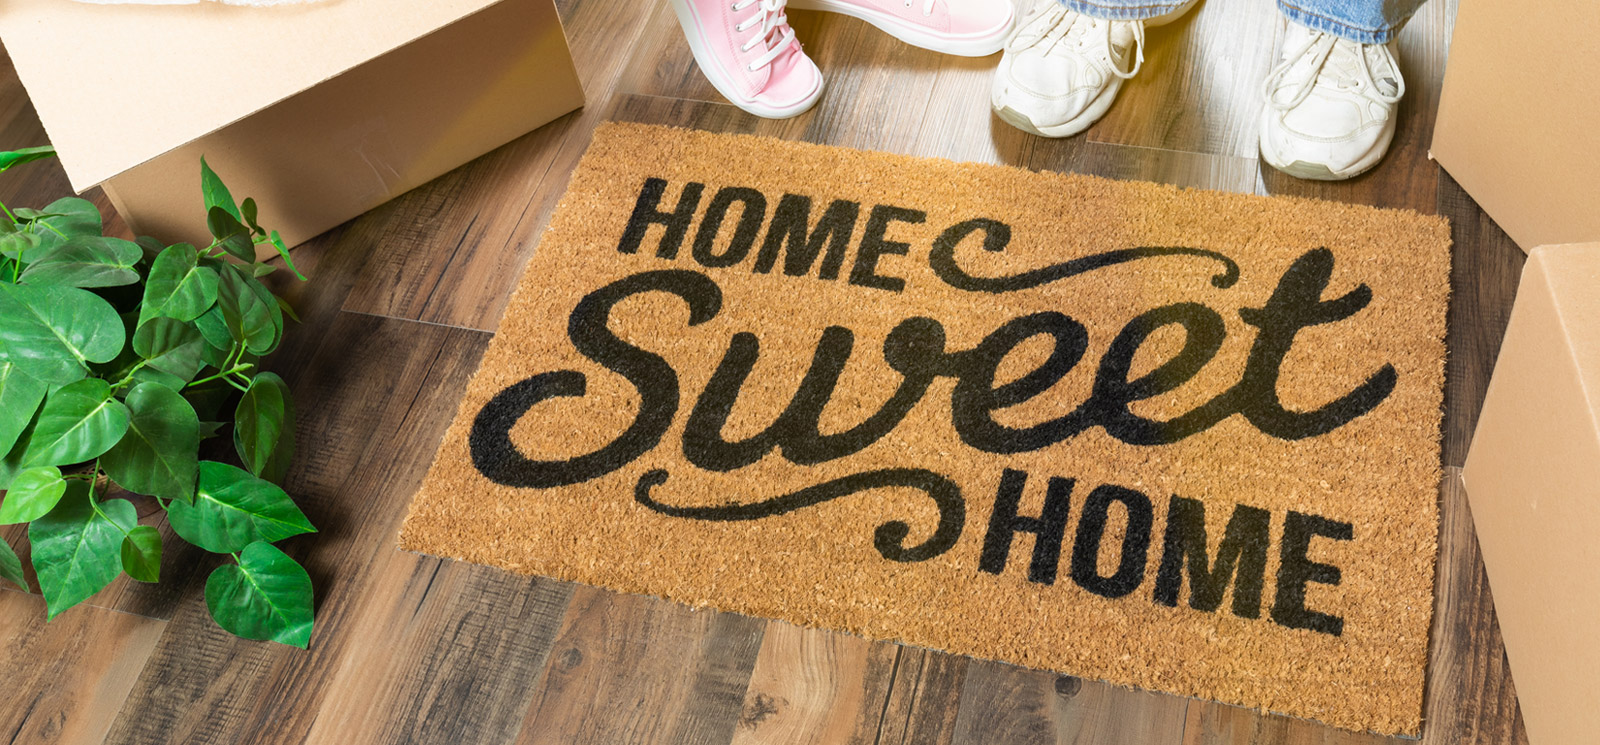 Home Sweet Home welcome mat, moving boxes, plant